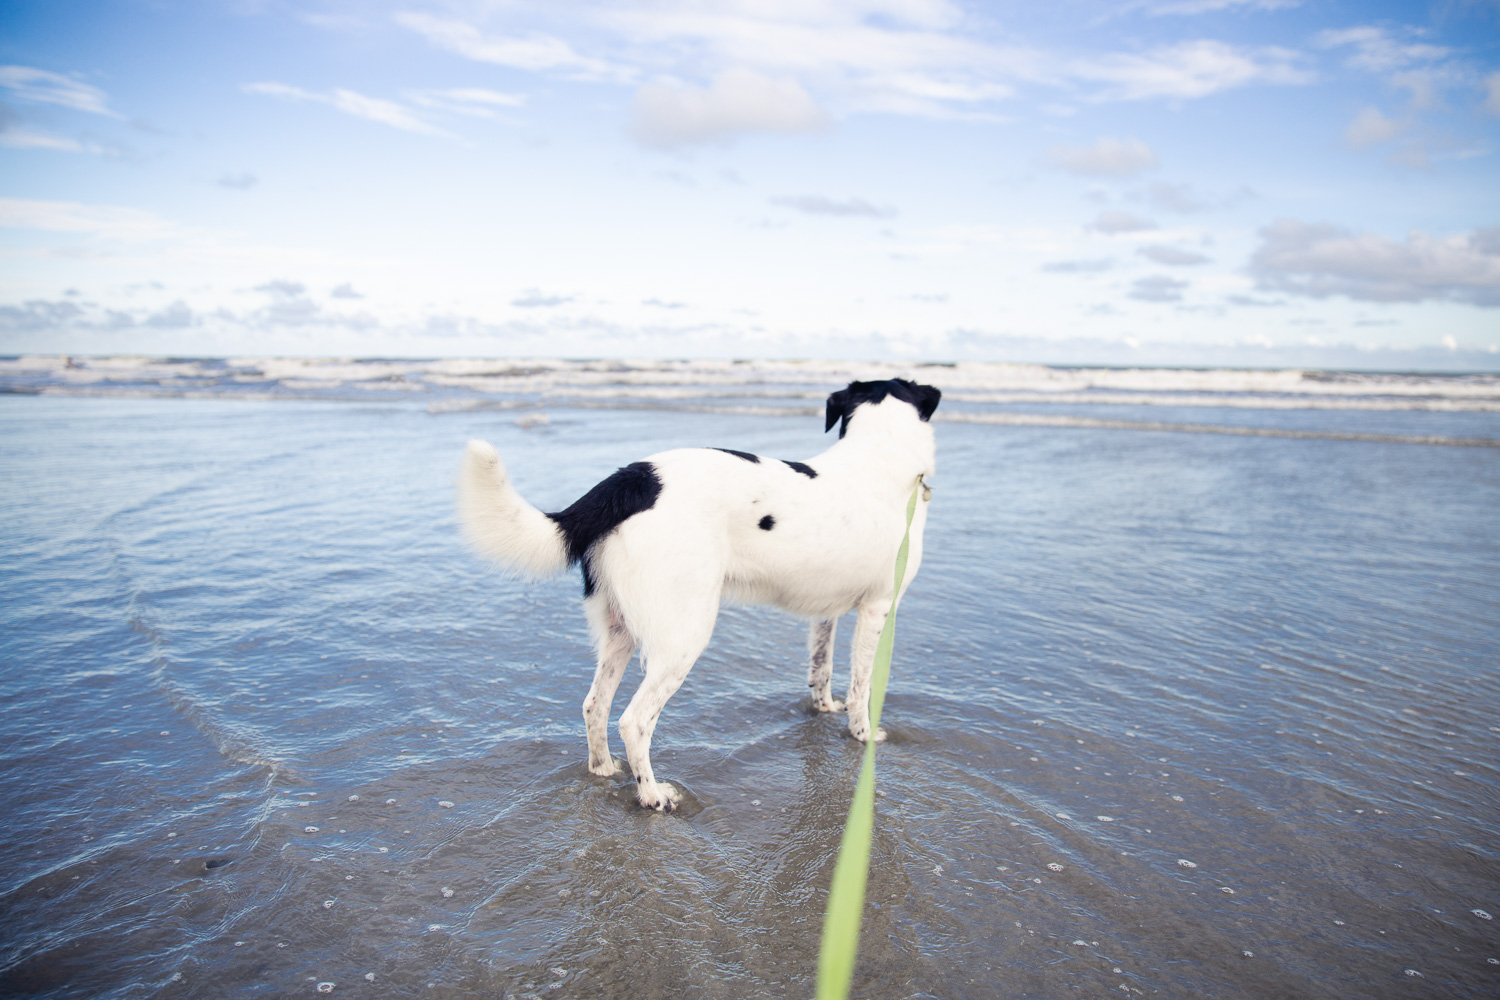 Black and white dog looking at the ocean